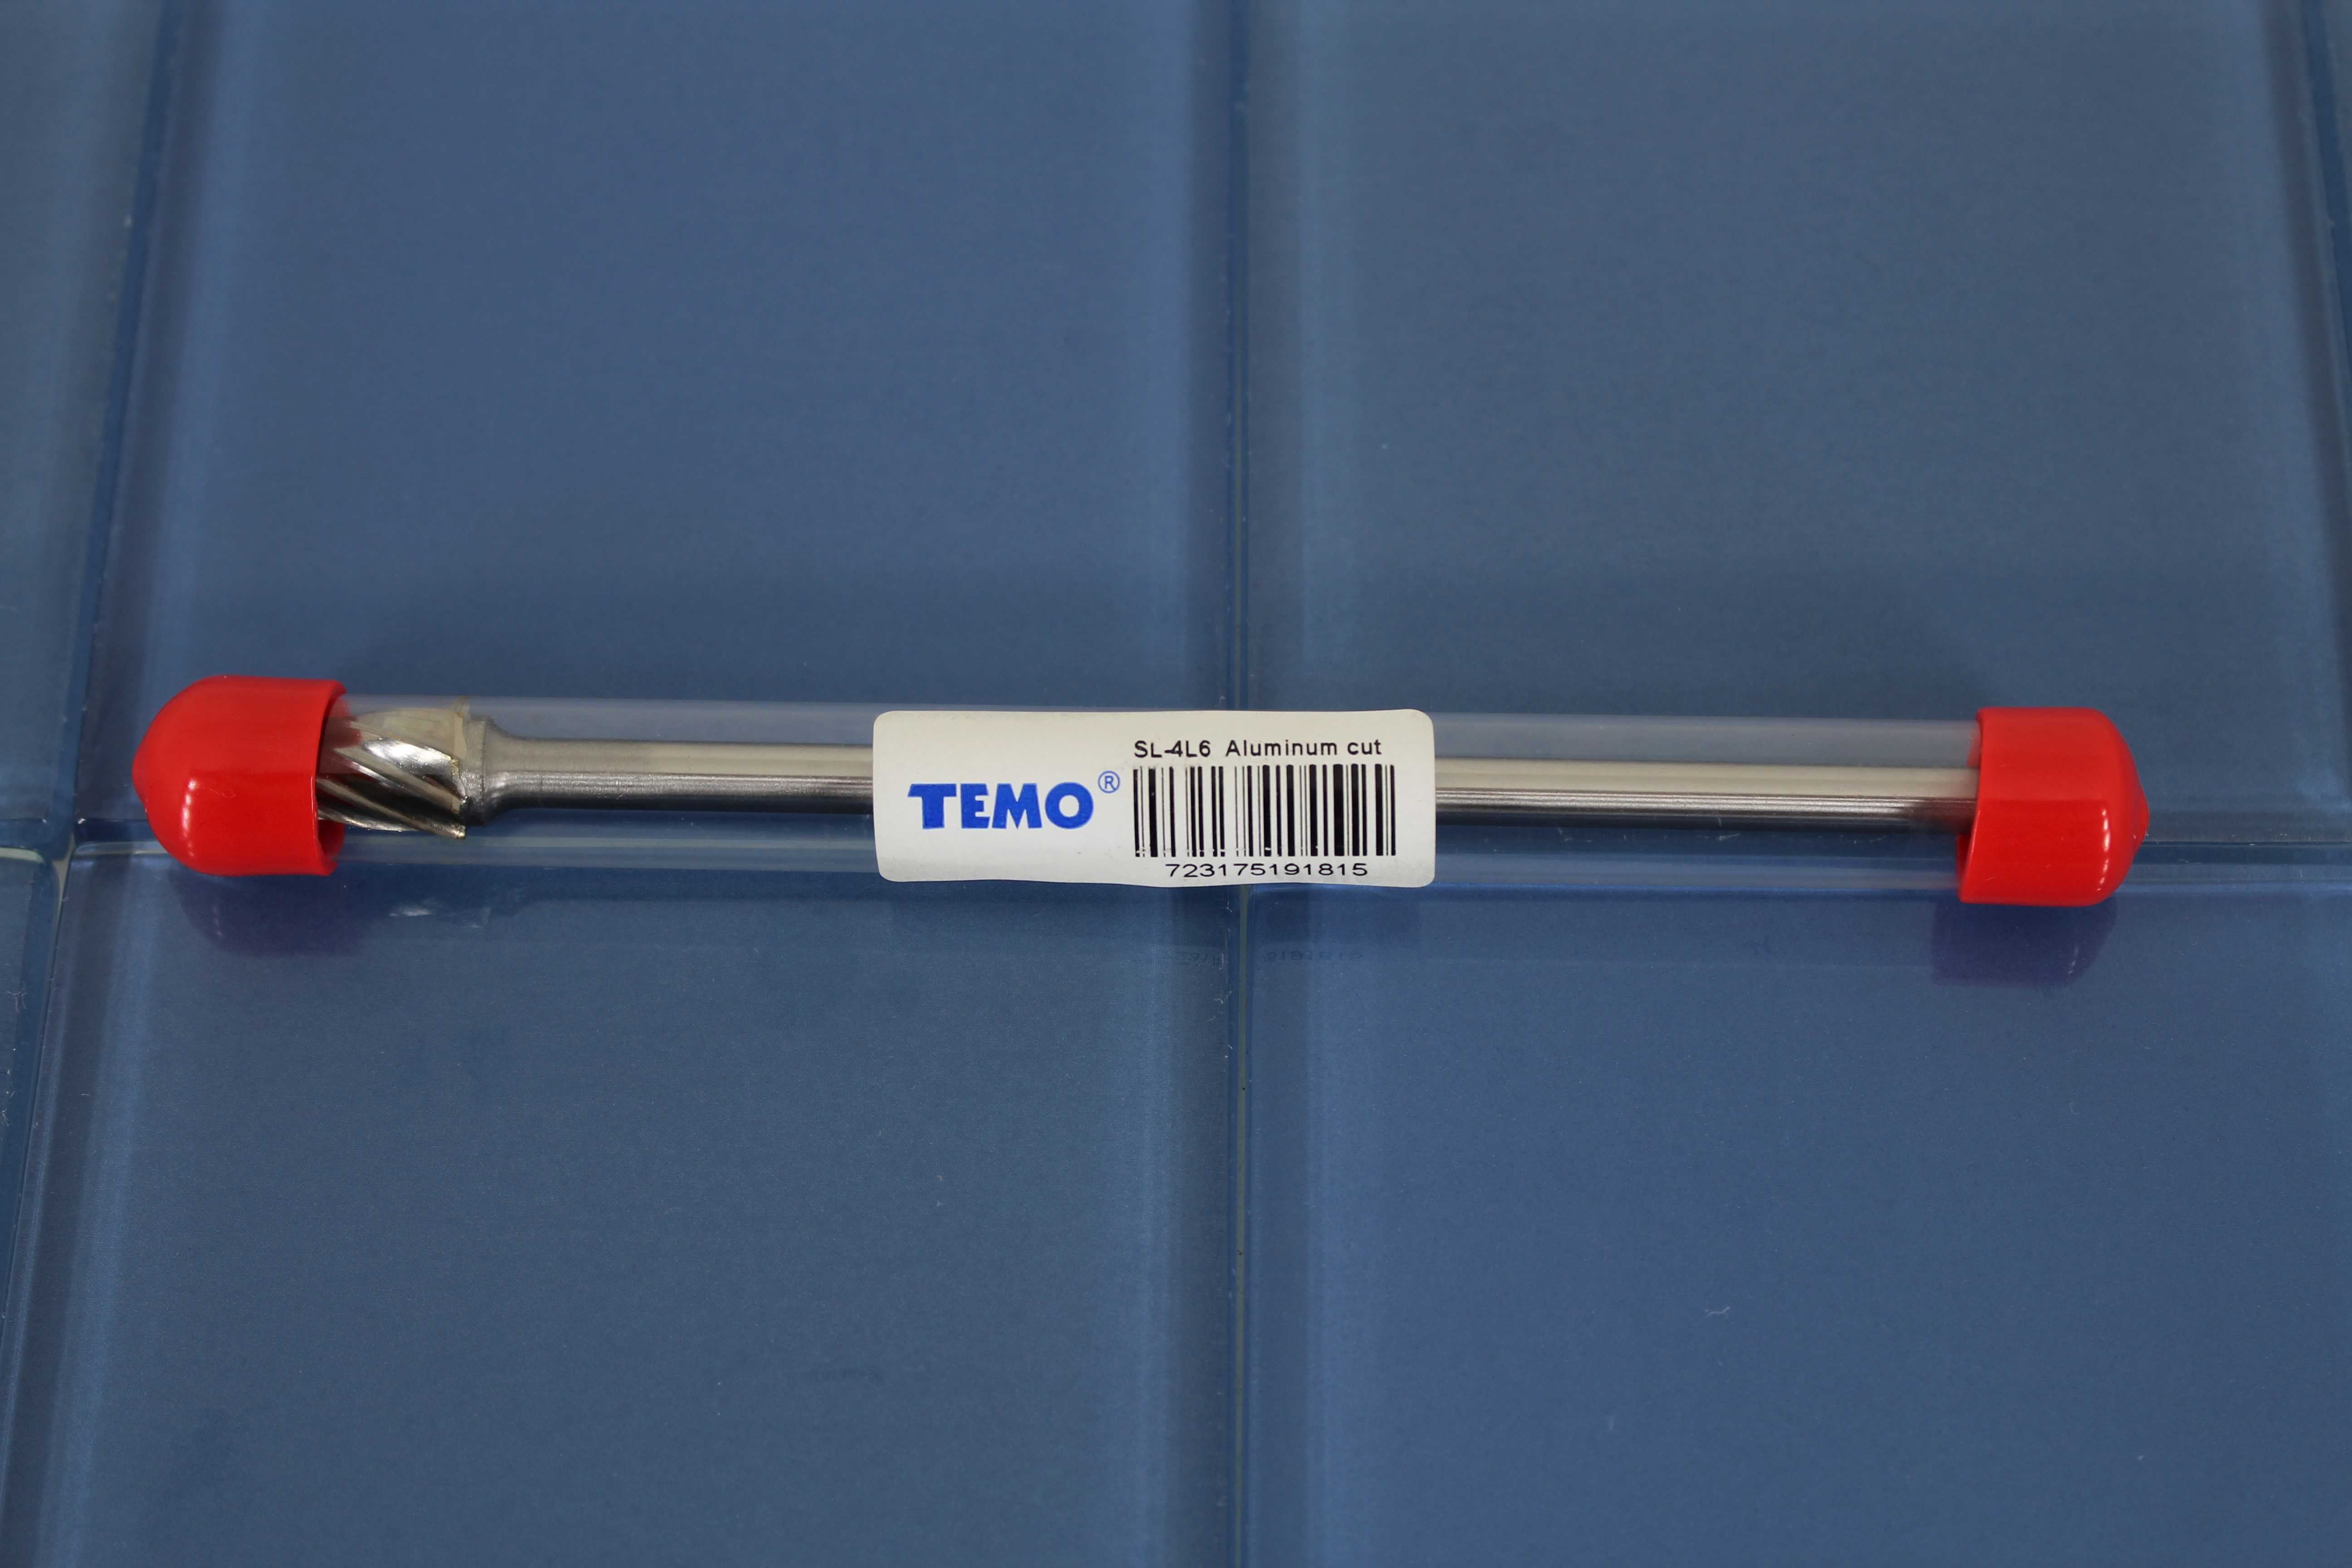 TEMO SL-4L6 NF Aluminum Cut Carbide Rotary Burr File, 1/2 inch (12.7mm) HEAD 14 degree Cone, 1/4 inch (6.35mm) Diameter 6 inch (152mm) Long Shank